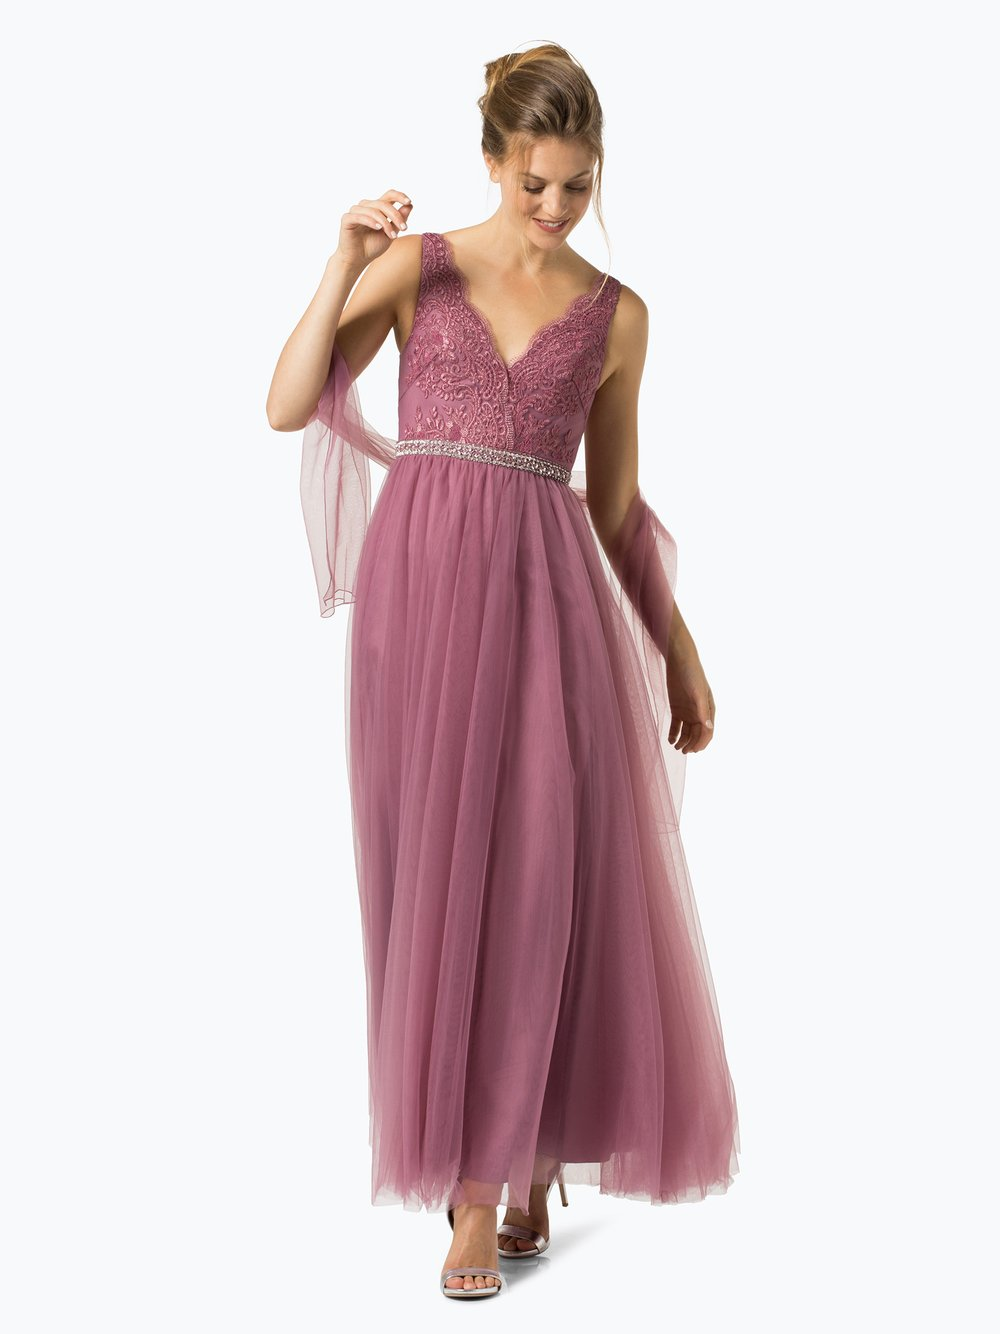 قبو مربى مطاط النقود abendkleid unique